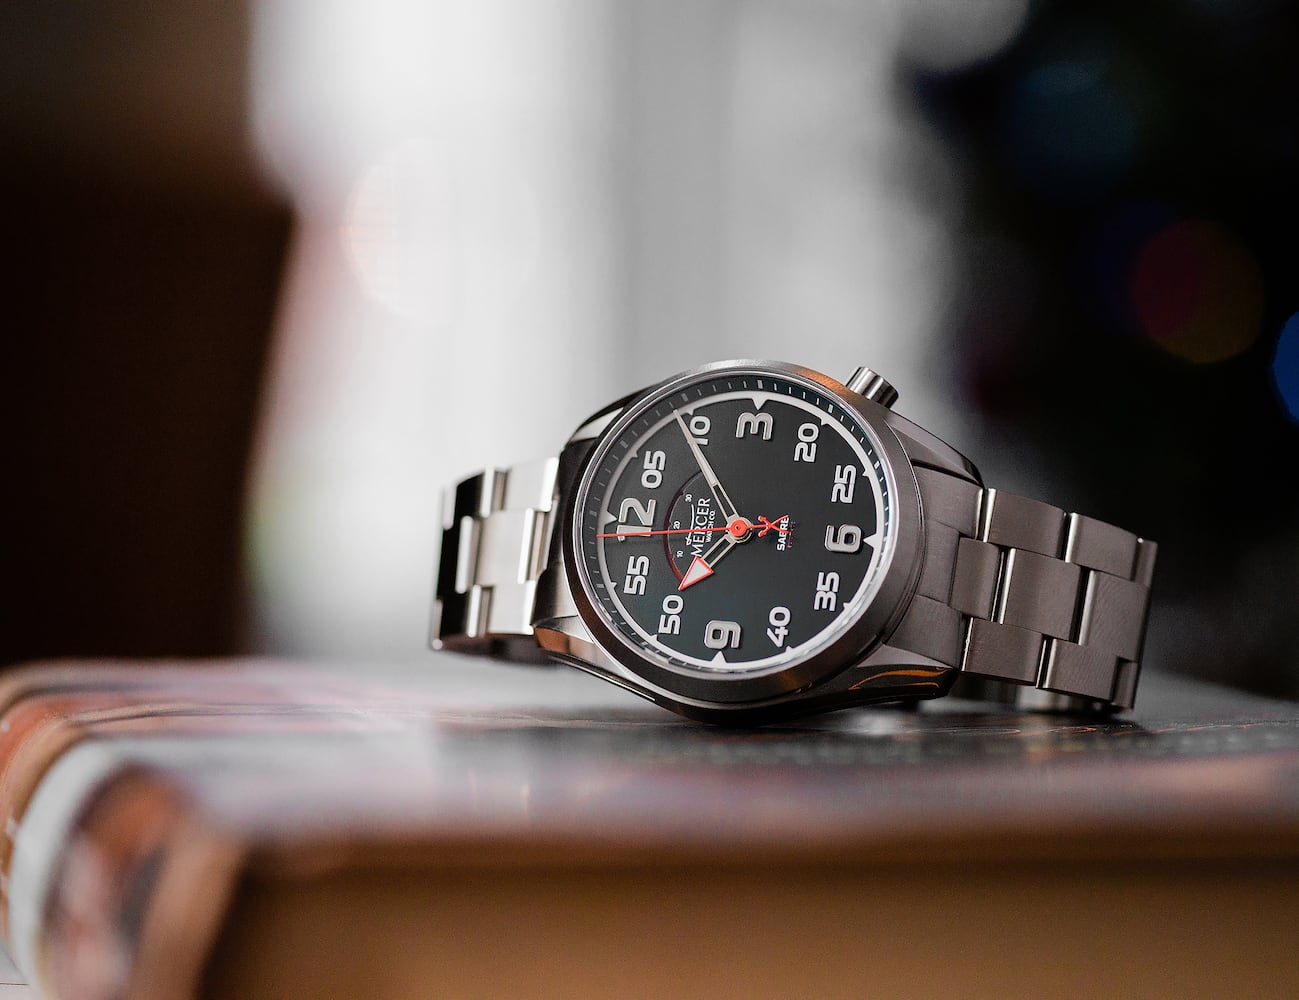 Sabre Automatic Sports Watch